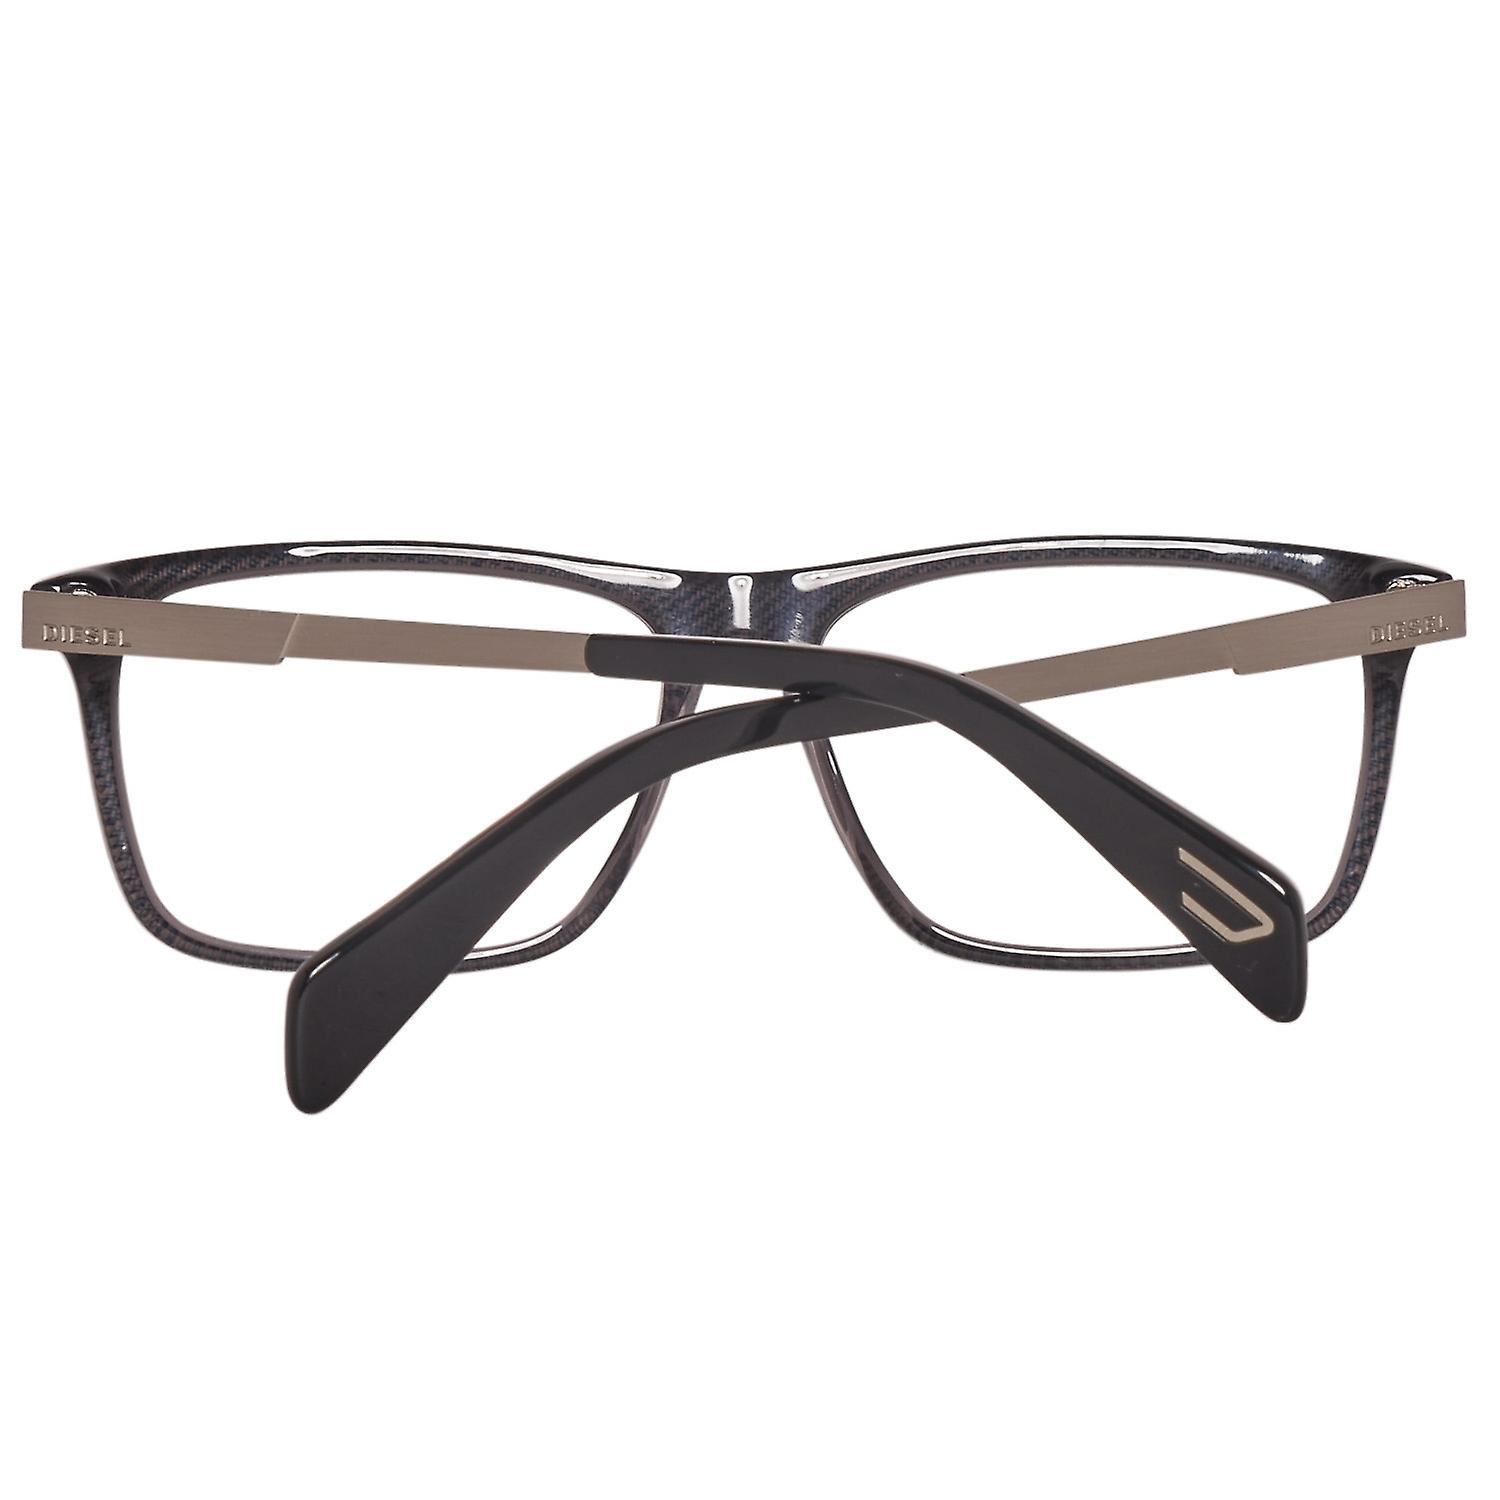 Diesel glasses mens Blau